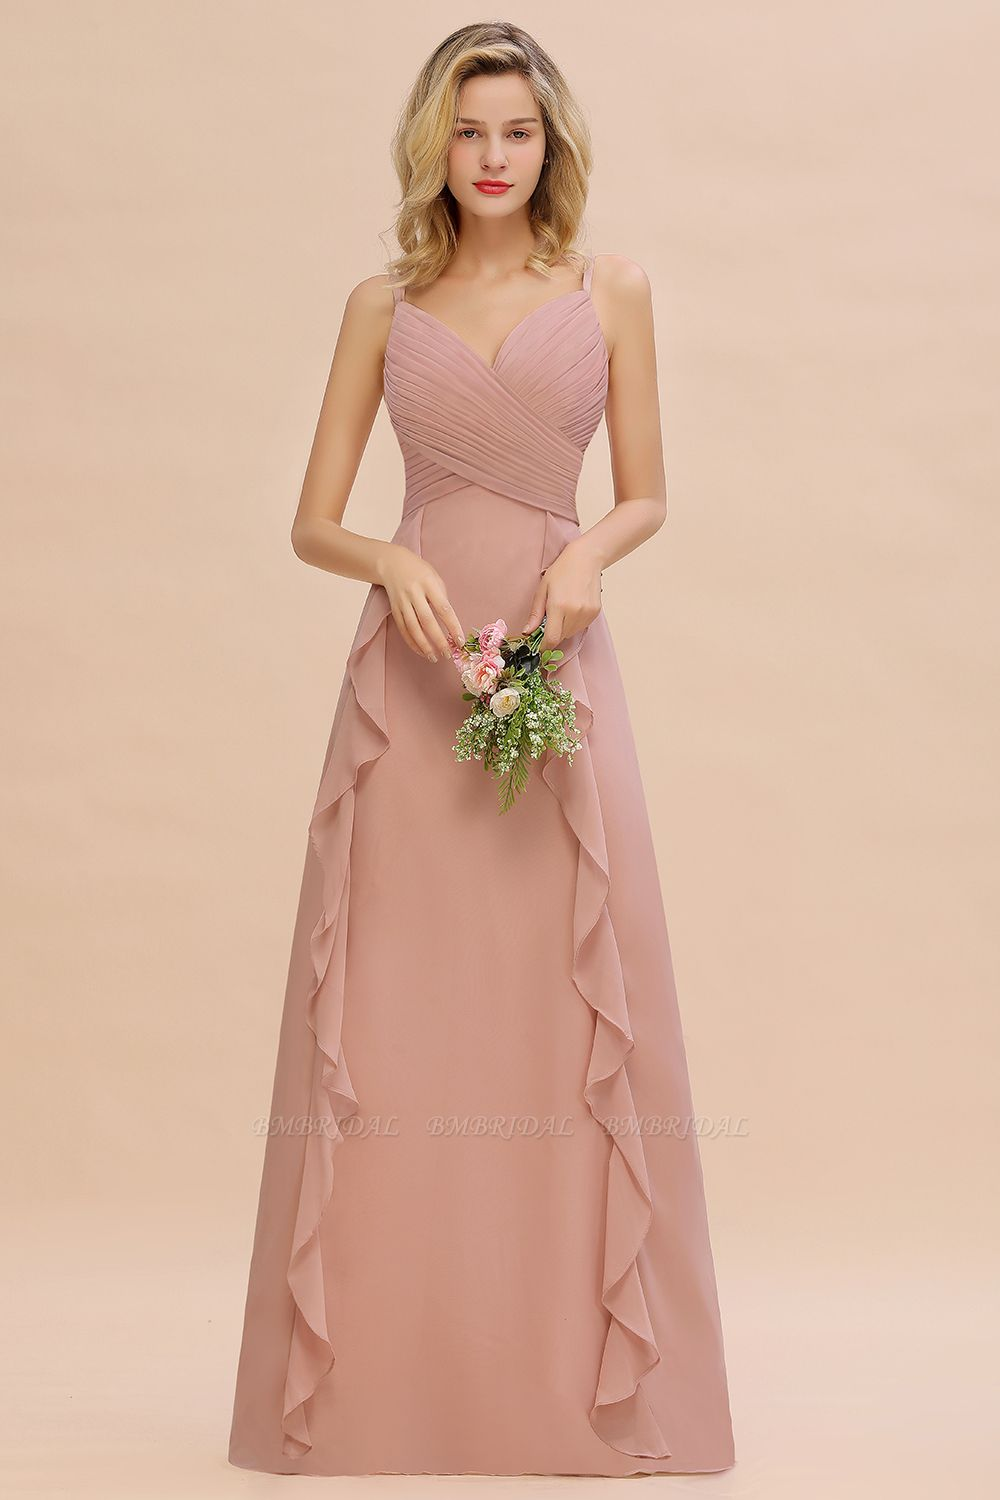 Chiffon Long Sleeveless Bridesmaid Dress with Cascading Ruffles